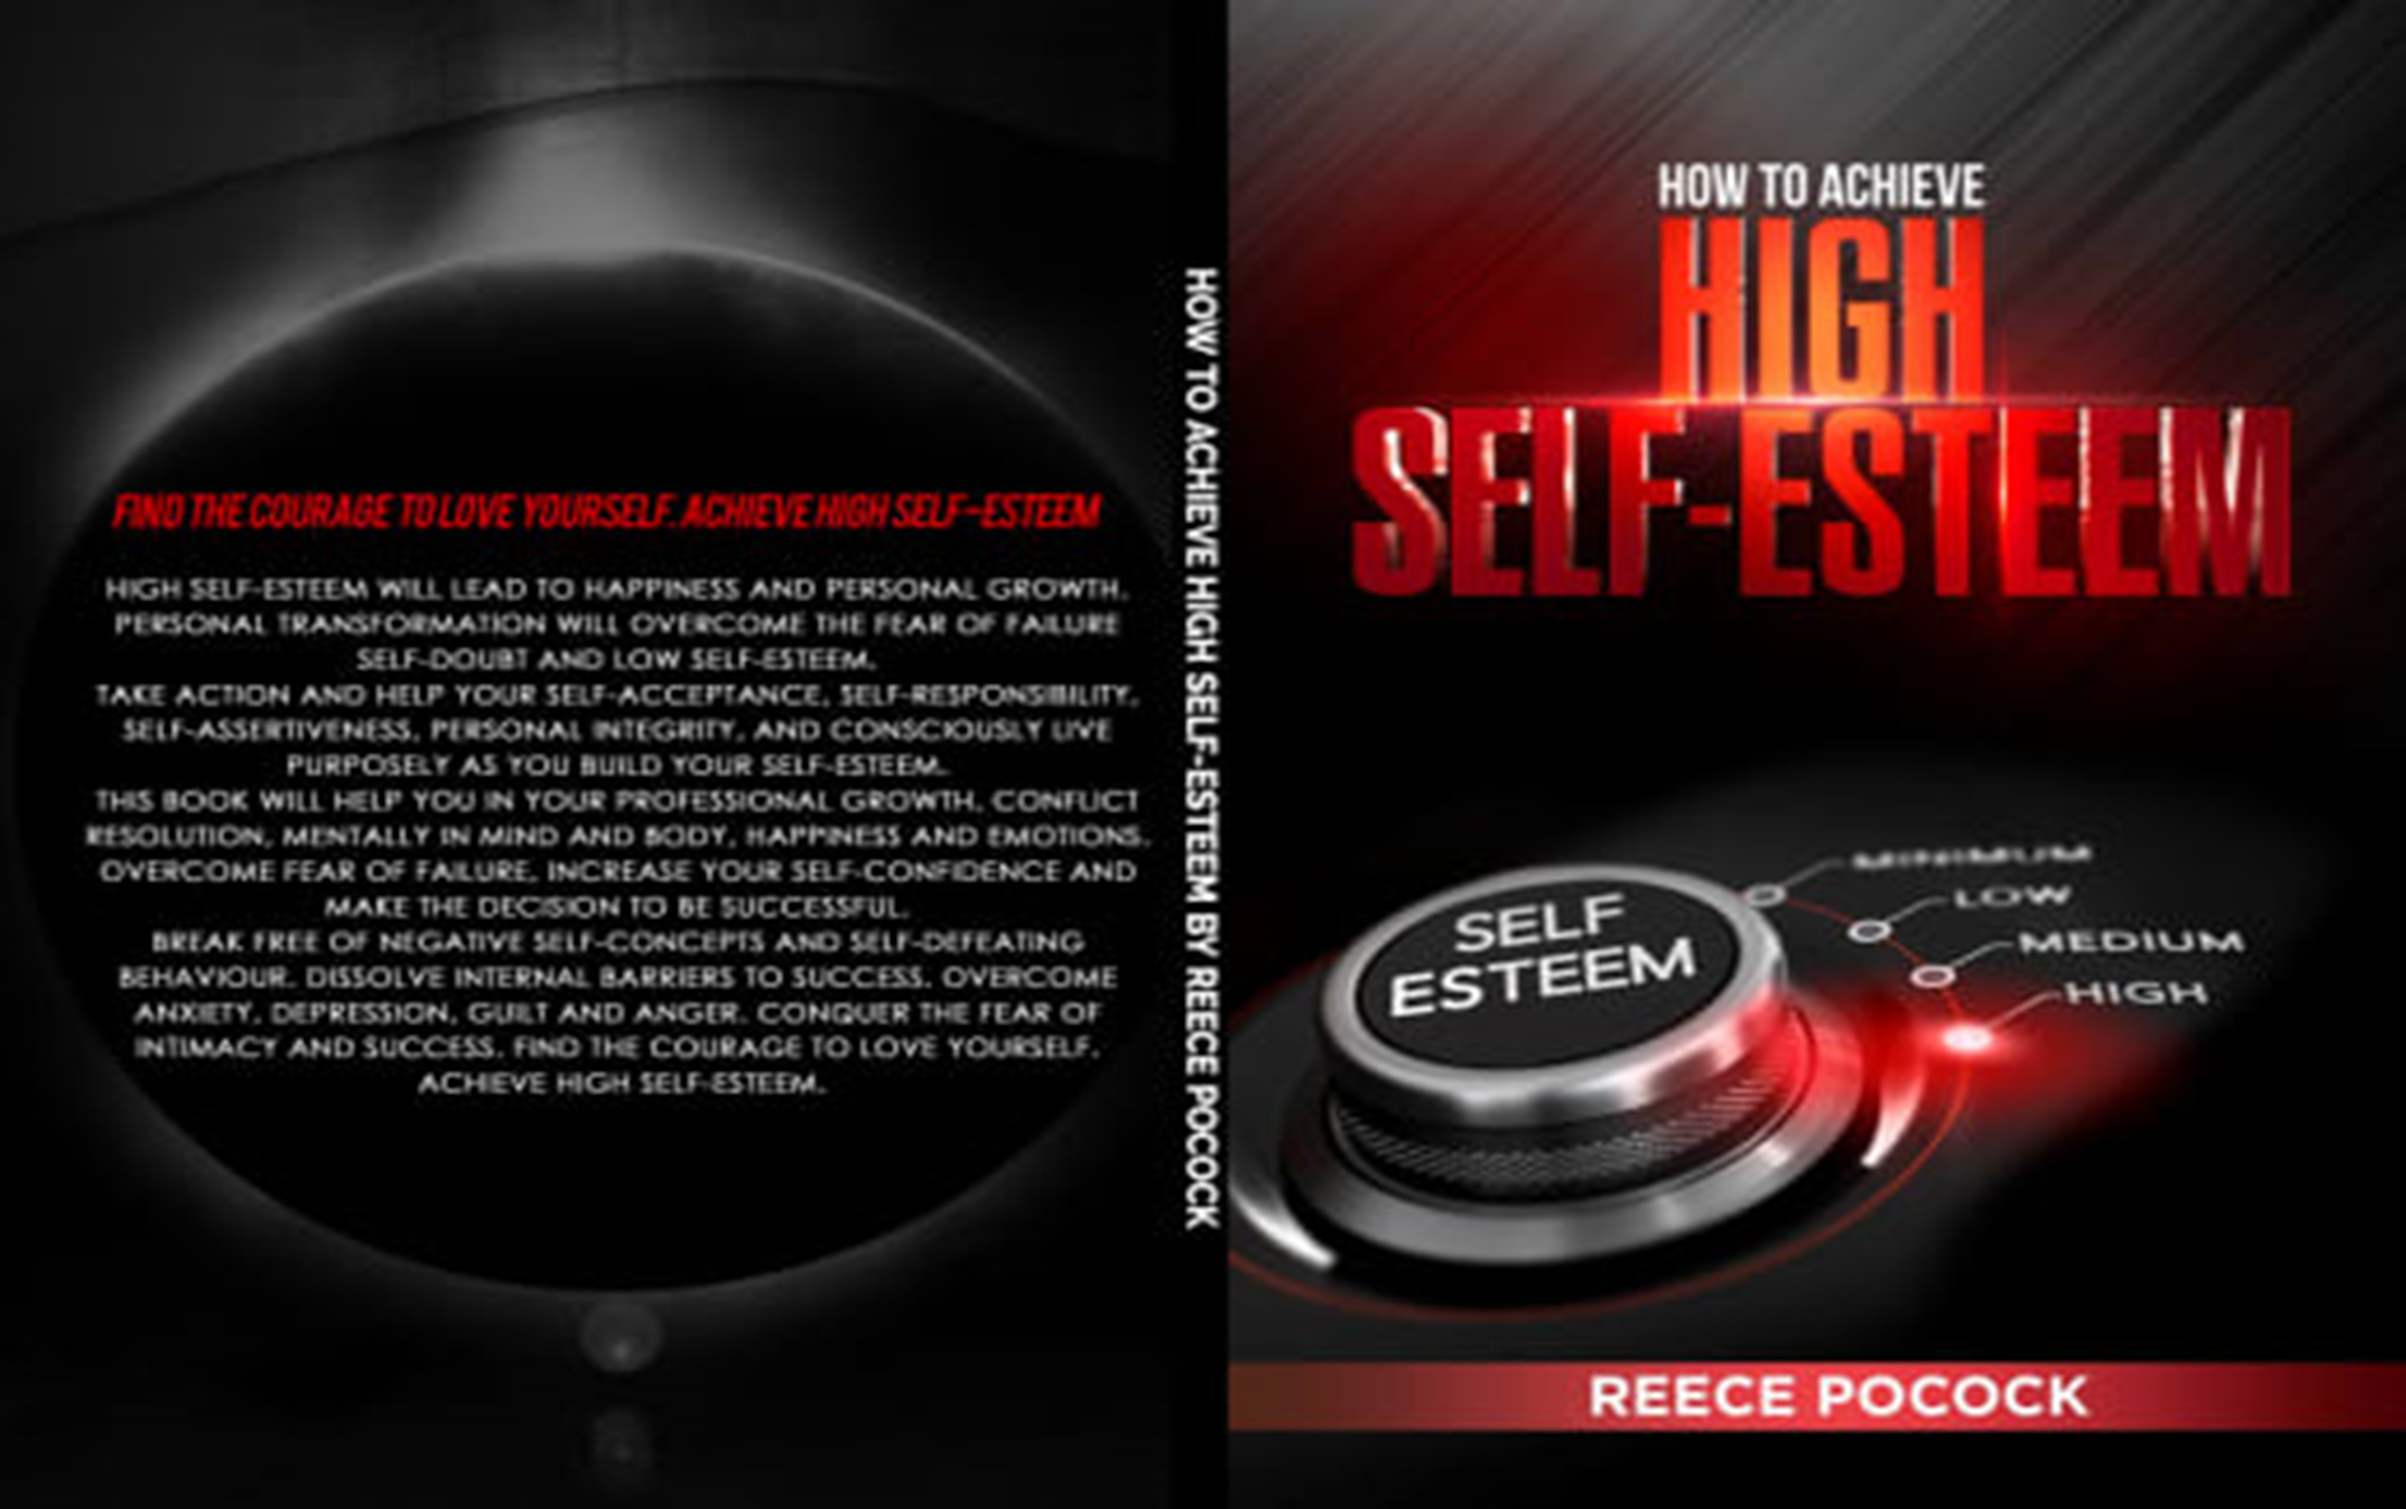 BookCover7x10_PNG_file.png